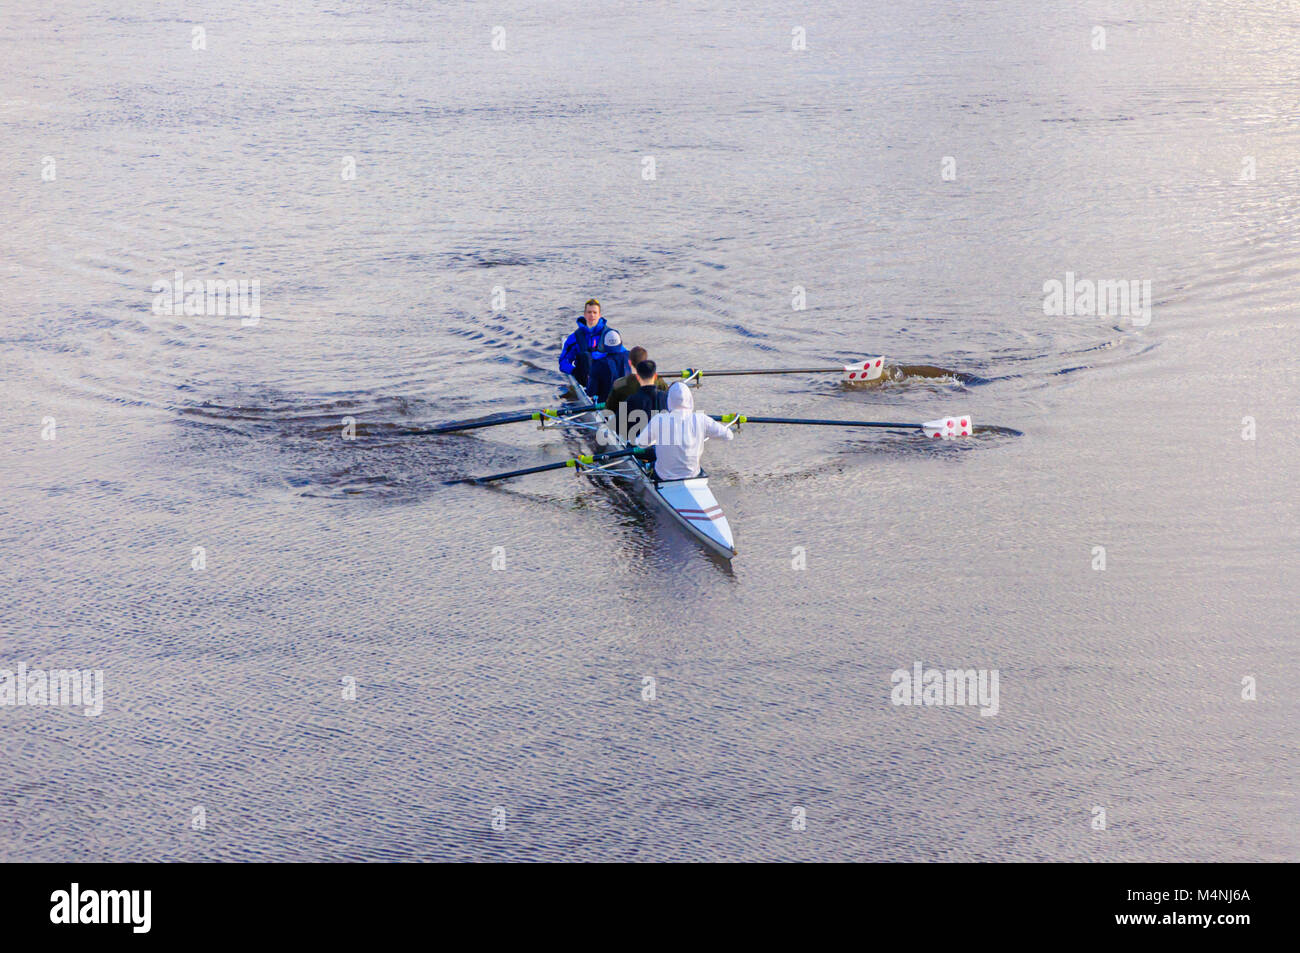 Glasgow, Scotland, UK. 17th February, 2018. UK Weather. Male rowers and cox in a coxed four rowing boat training - Stock Image